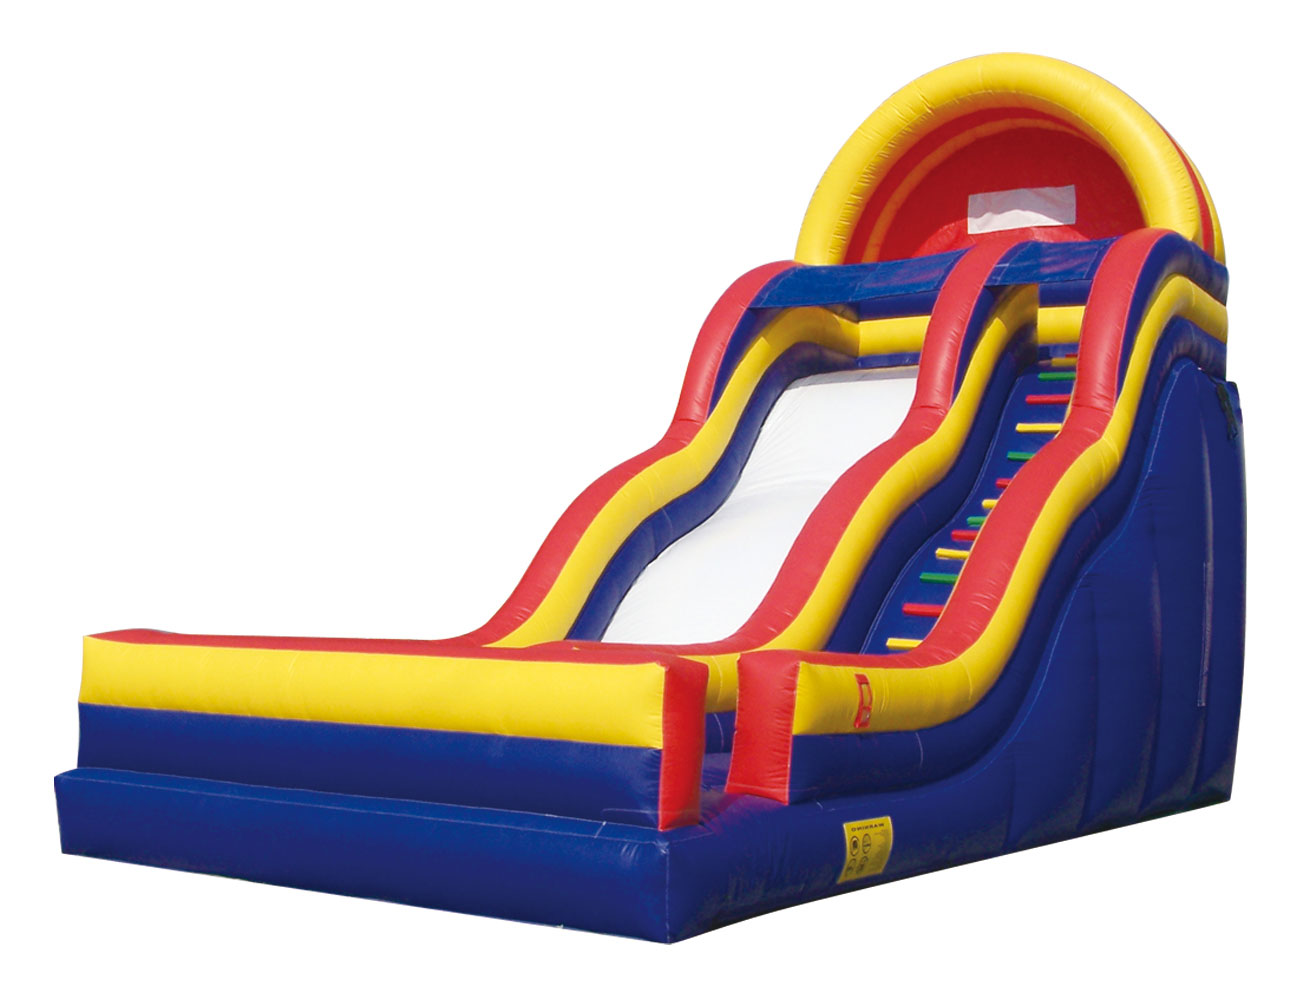 hight resolution of inflatable slide clipart